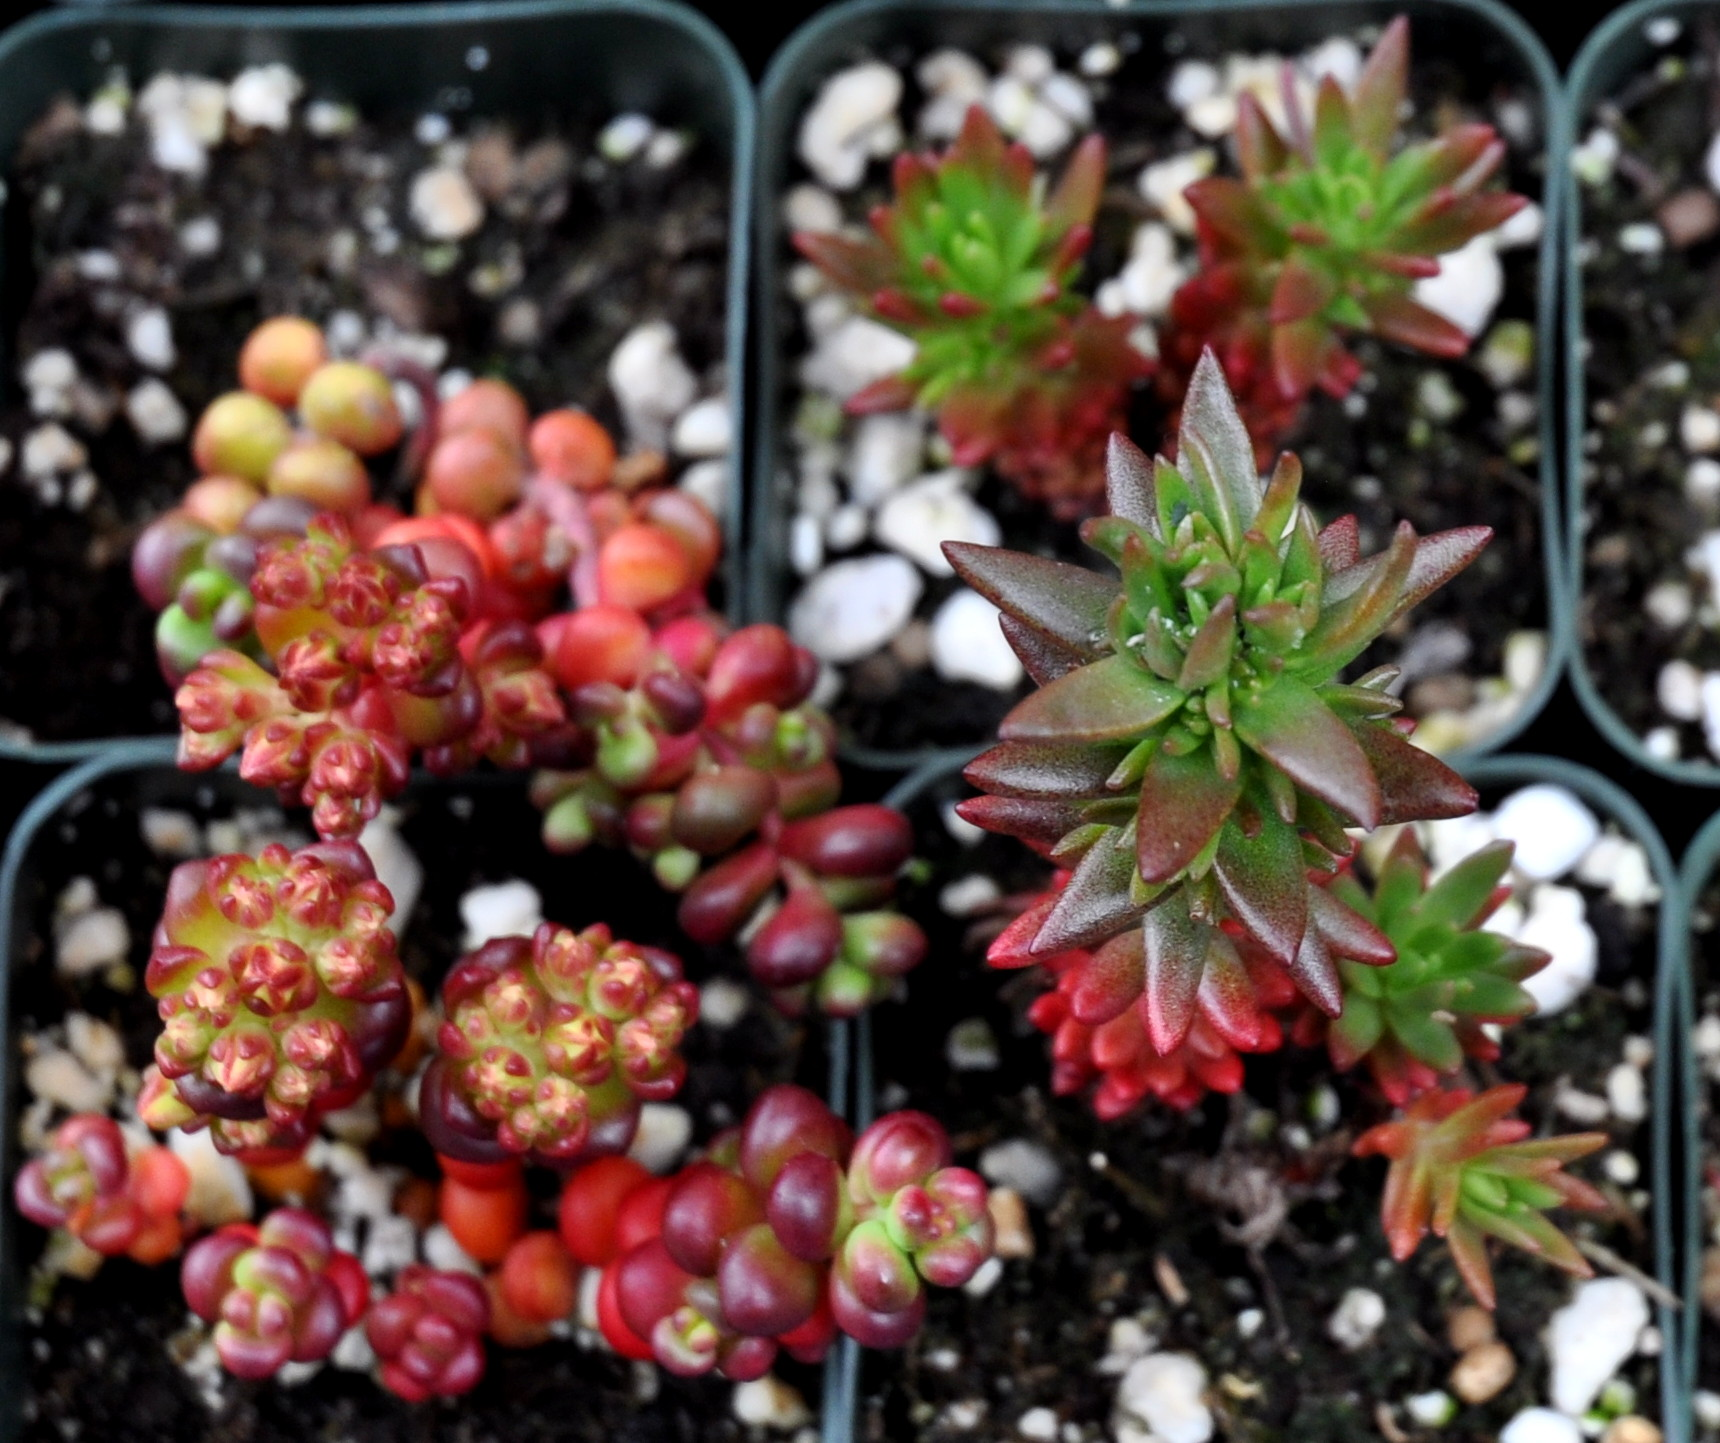 Stunning succulents from Phocas Farms. Photo copyright 2012 by Zachary D. Lyons.